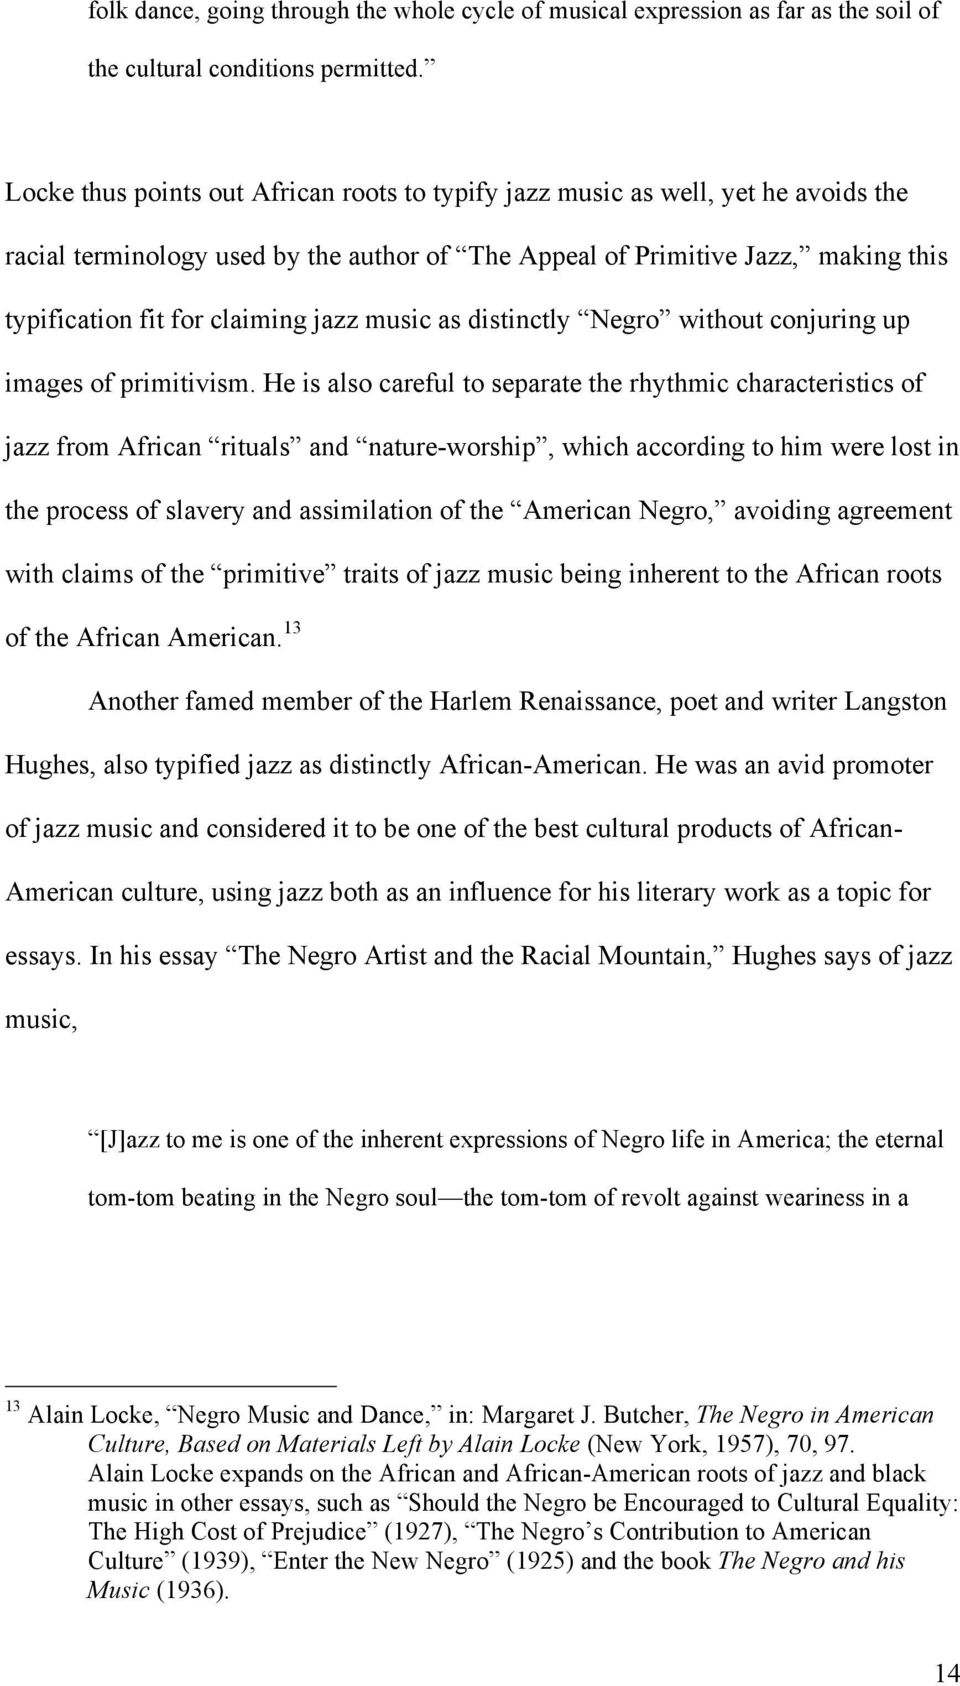 harlem renaissance essay introduction The roaring twenties the 1920s were an outburst of black artistic and literary originality - harlem renaissance introduction america began to make progress as a society.